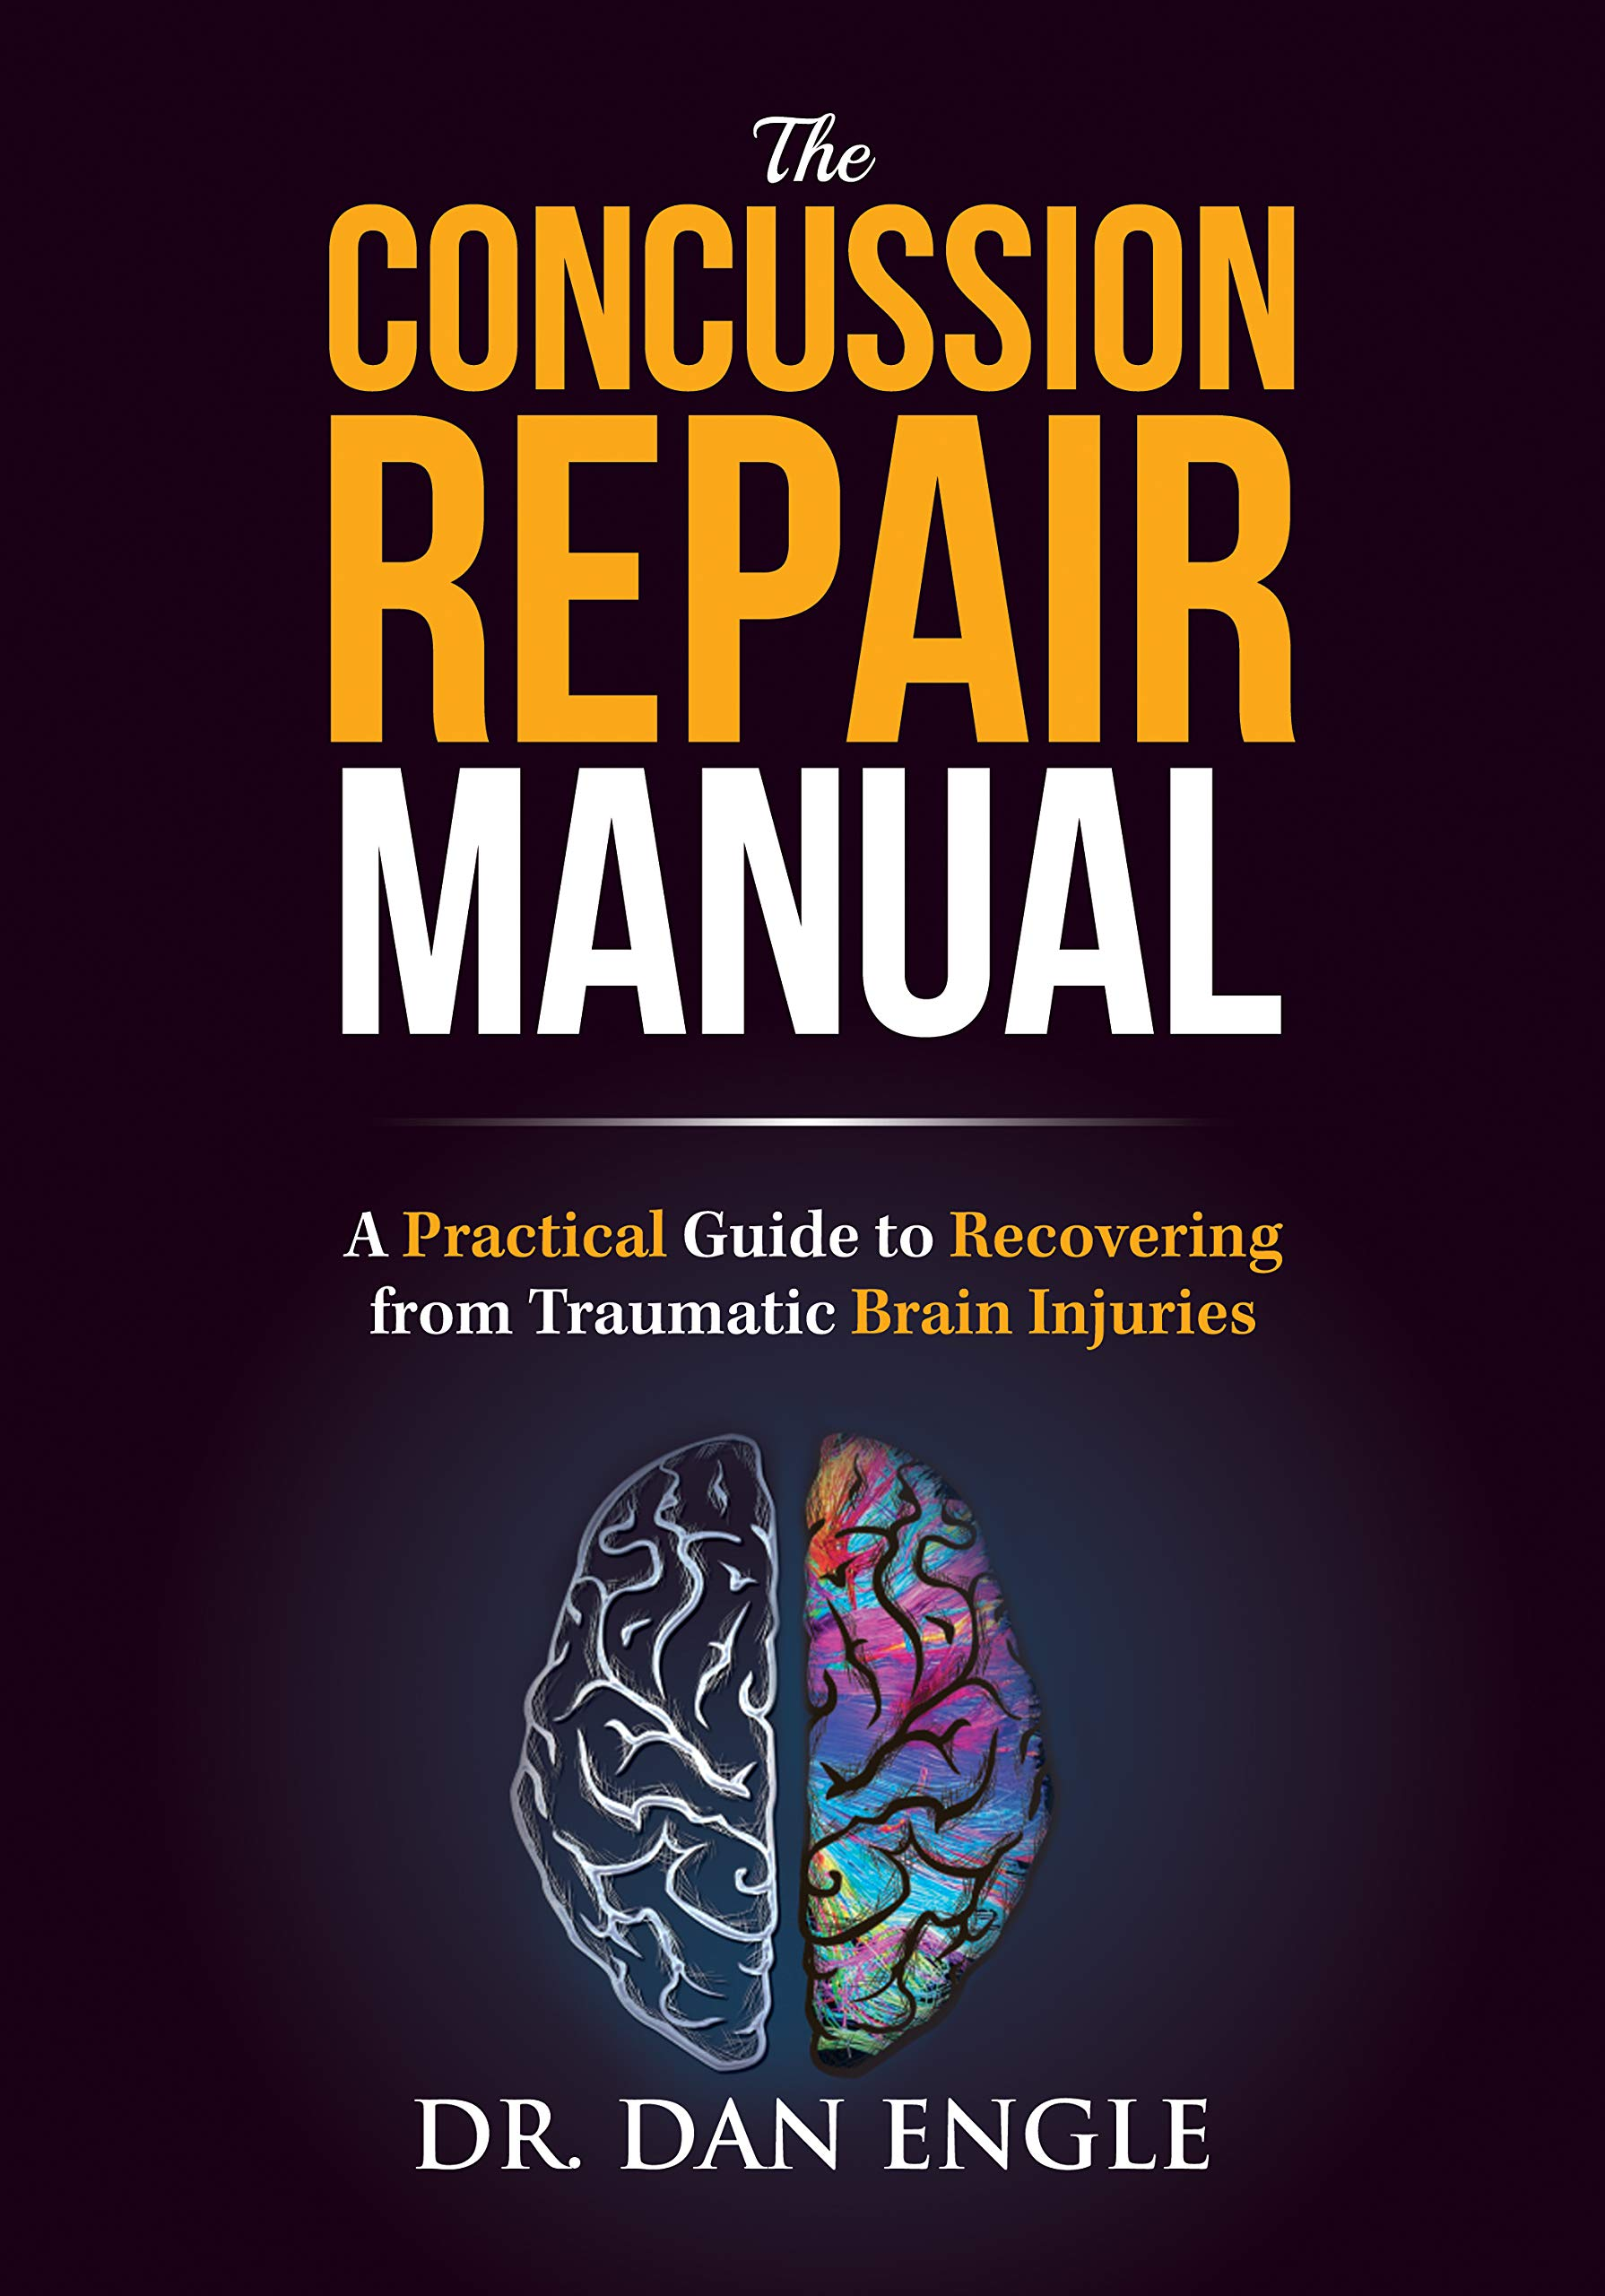 The Concussion Repair Manual: A Practical Guide to Recovering from  Traumatic Brain Injuries: Dr. Dan Engle Dr. Engle: 9781946697349:  Amazon.com: Books